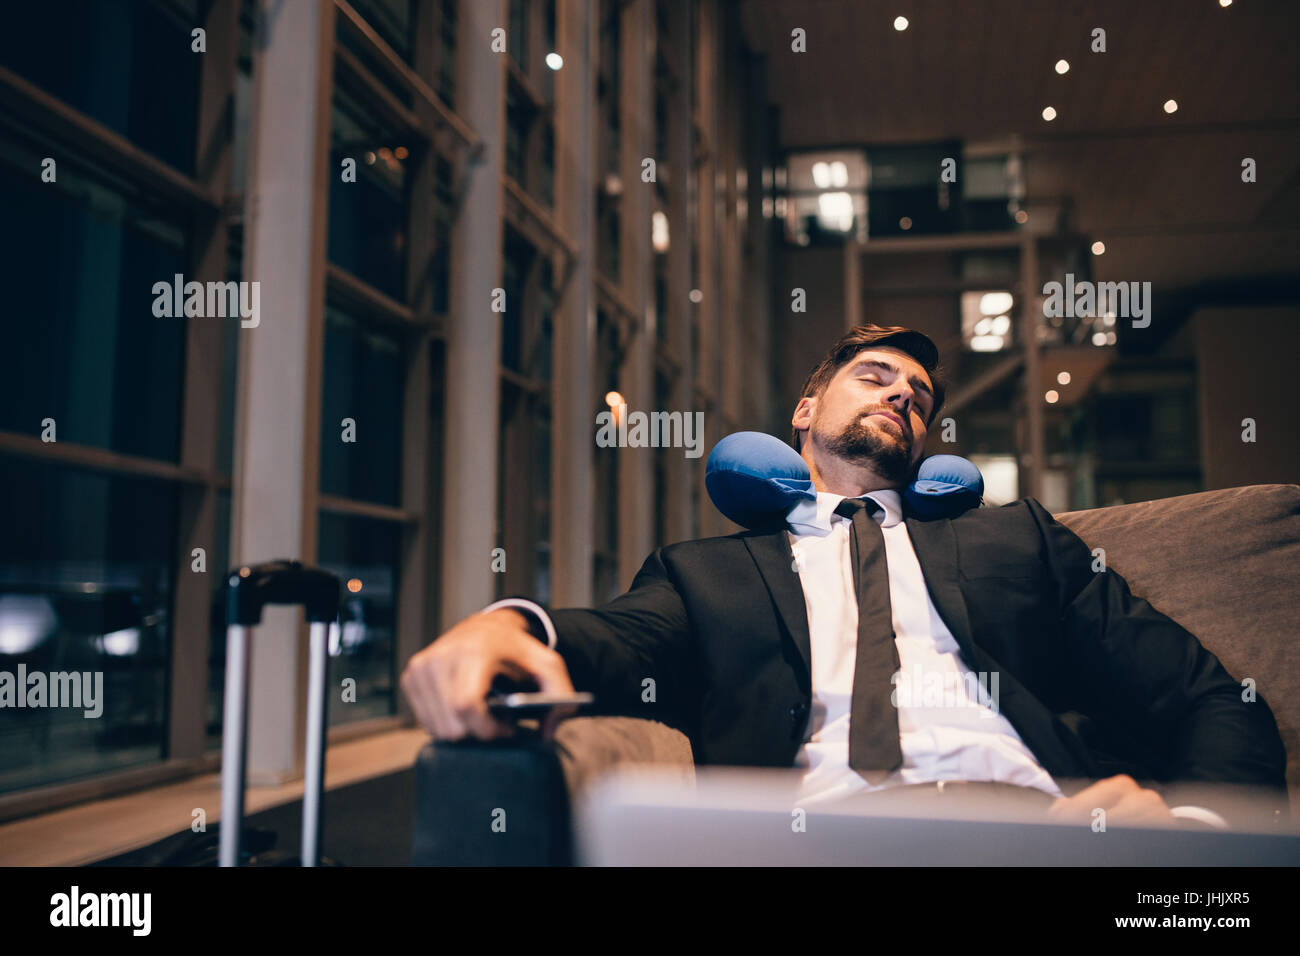 Traveler waiting at airport after flights delays and cancellations. Businessman asleep in airport lounge. - Stock Image